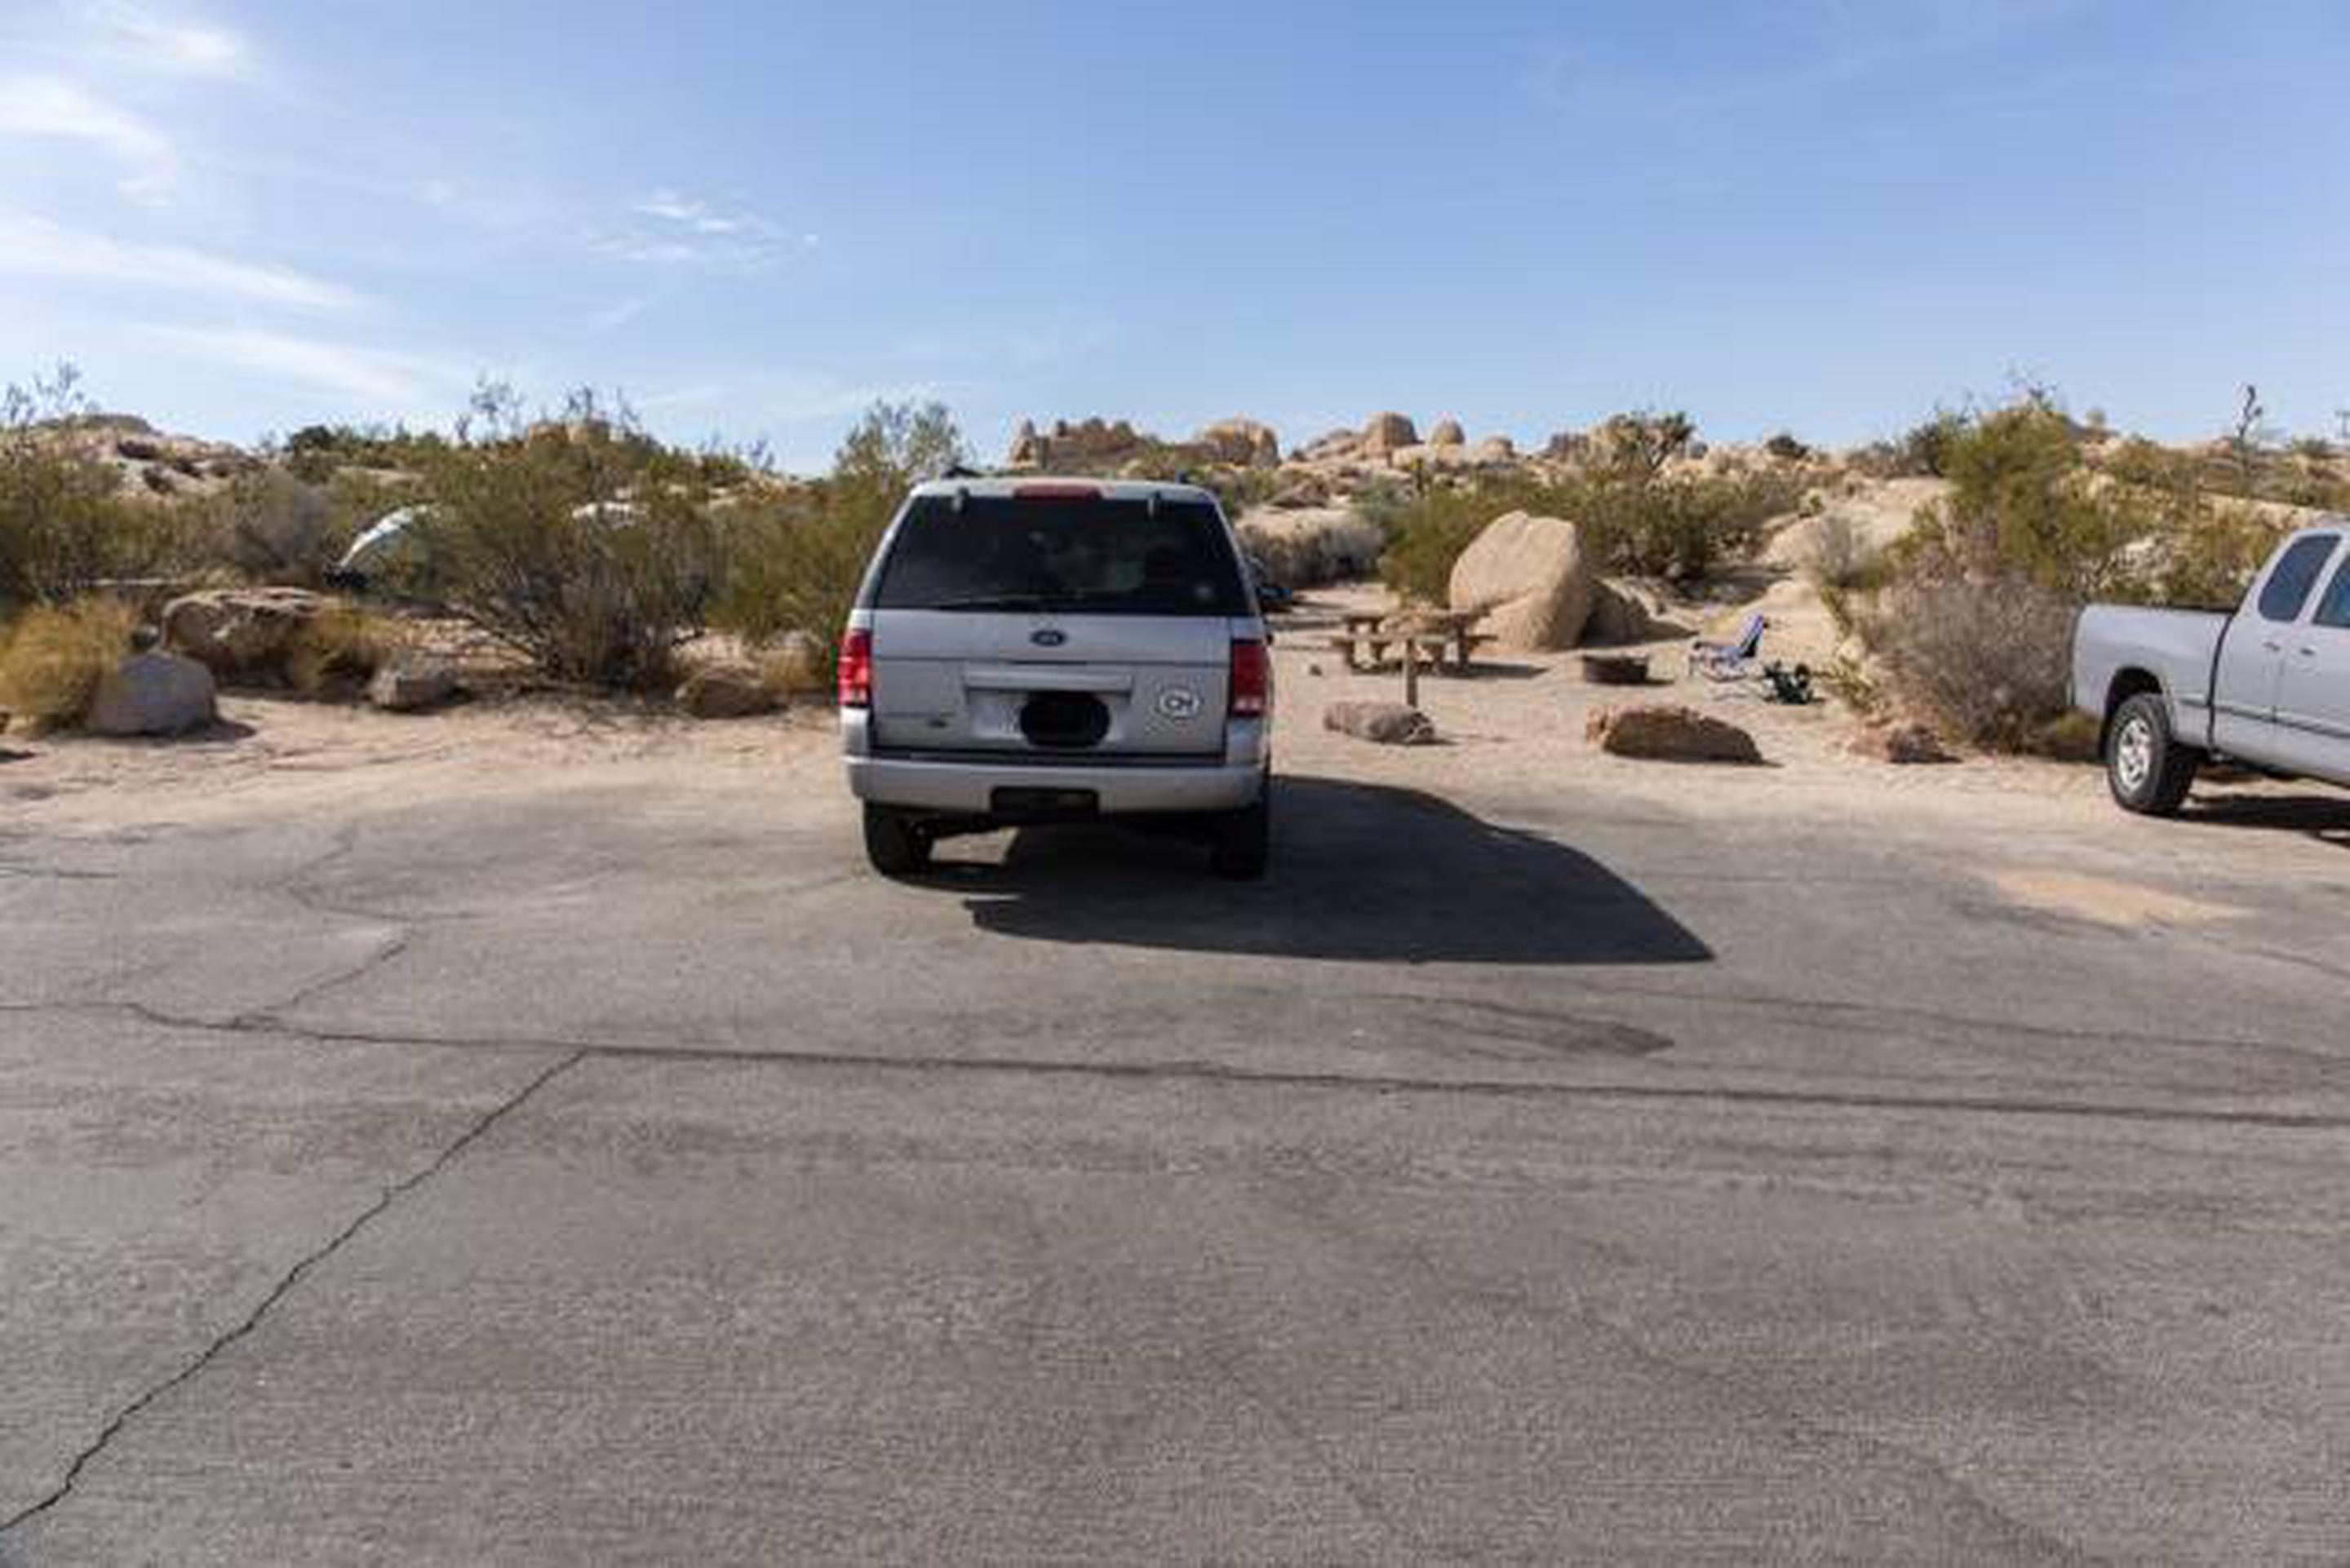 Jumbo Rocks site 106parking space for campsite